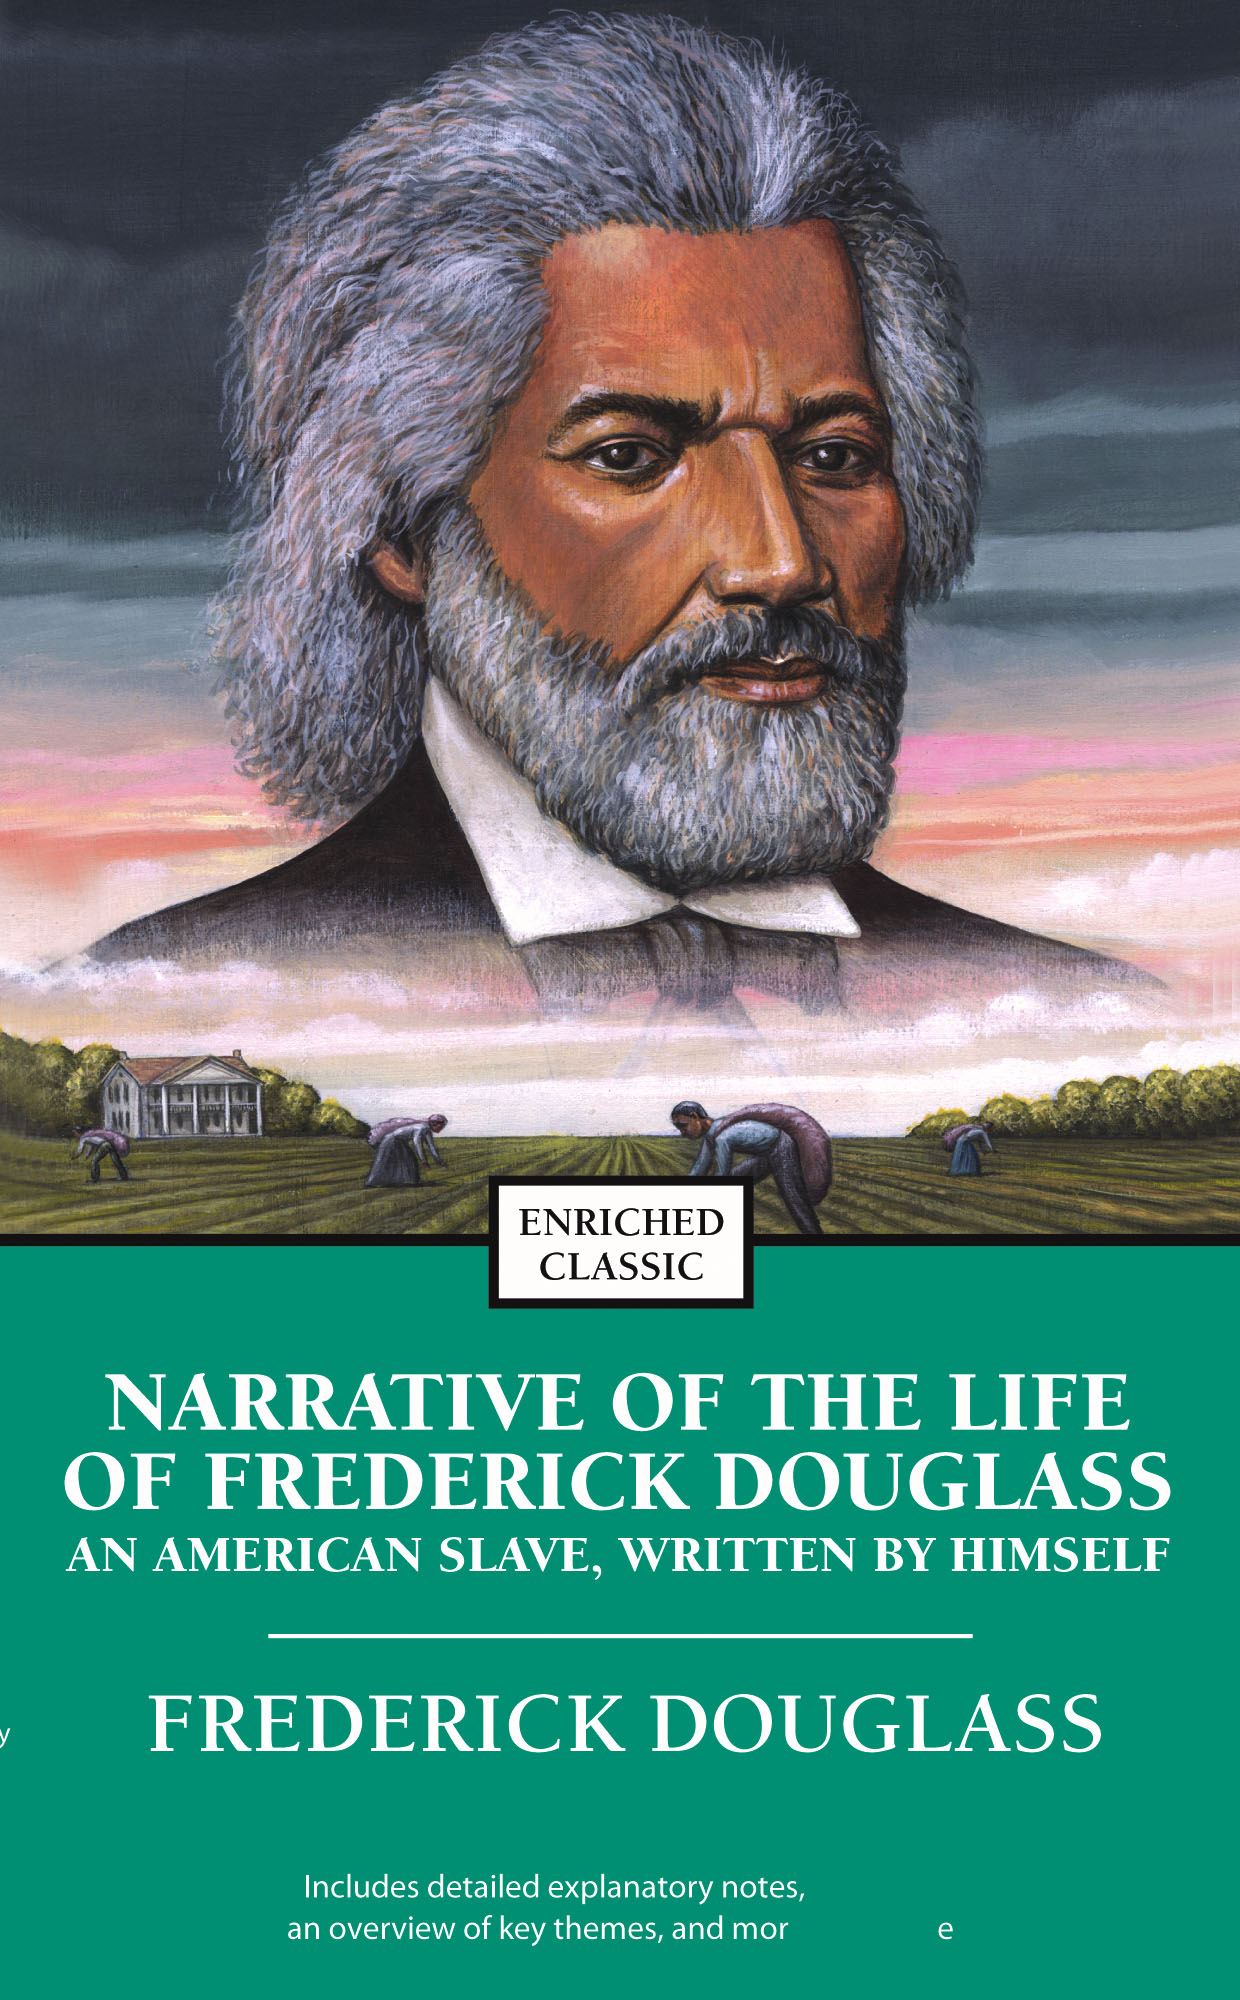 narrative of the life of frederick douglass essay questions contract law essay questions and answers contract law essay all about essay example galle co rhetorical middot ideas about frederick douglass